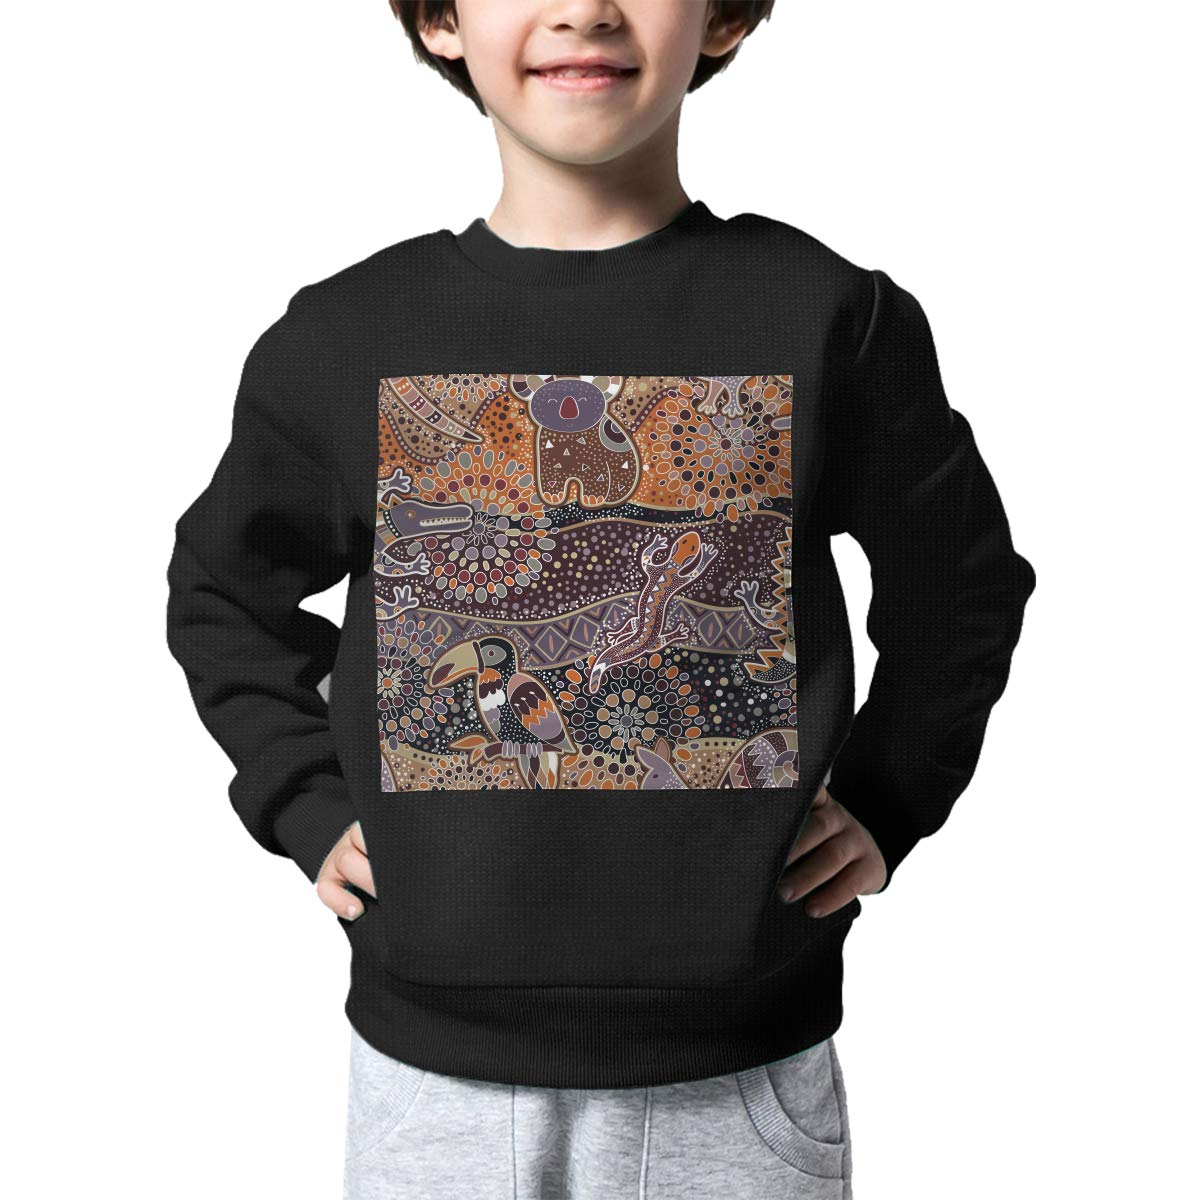 BaPaLa Crocodile Boys Pullover Sweater Funny Crew Neck Knitted Sweater for 2-6T